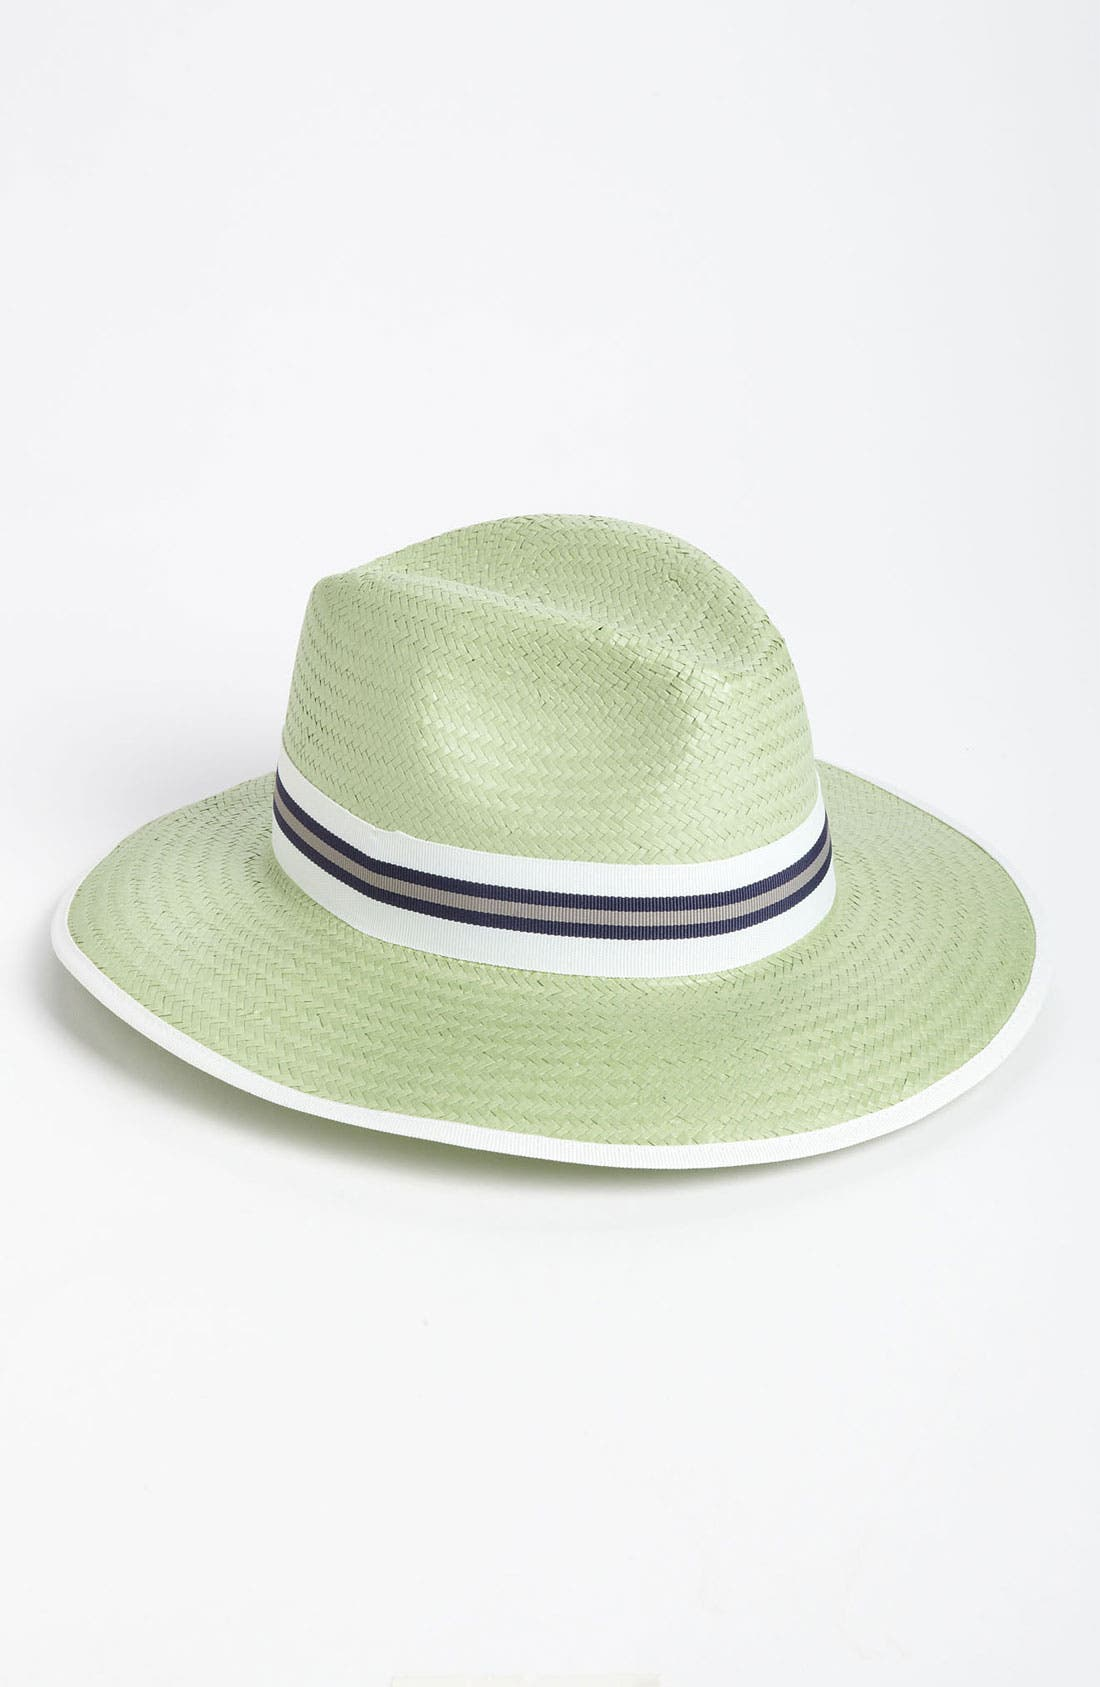 Alternate Image 1 Selected - Nordstrom Straw Fedora